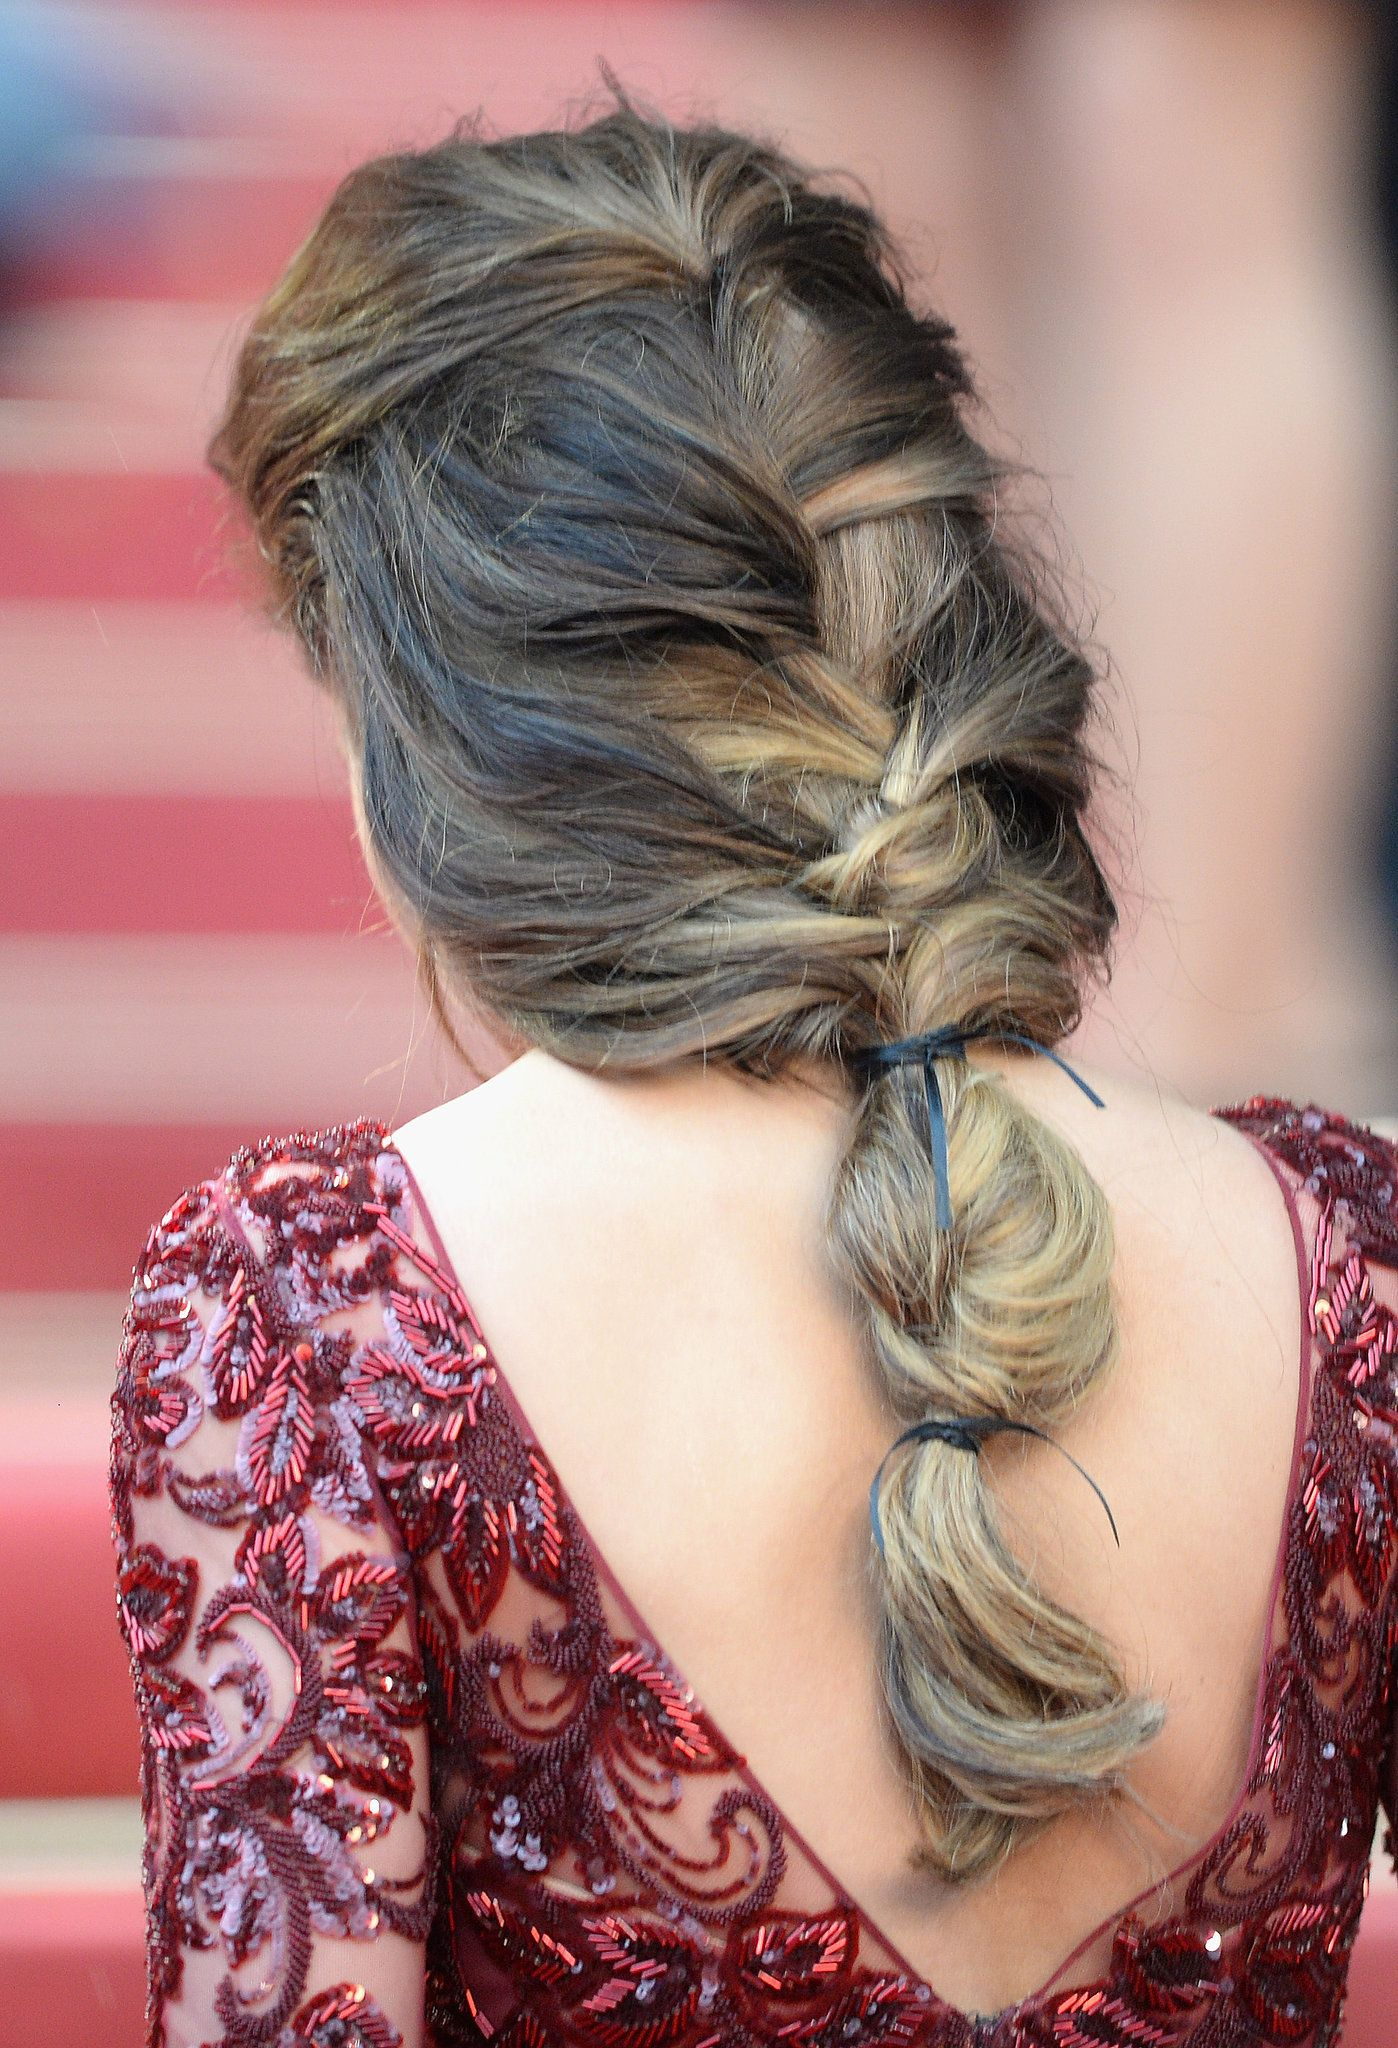 Redcarpet inspiration for your bridal updo belleza pinterest